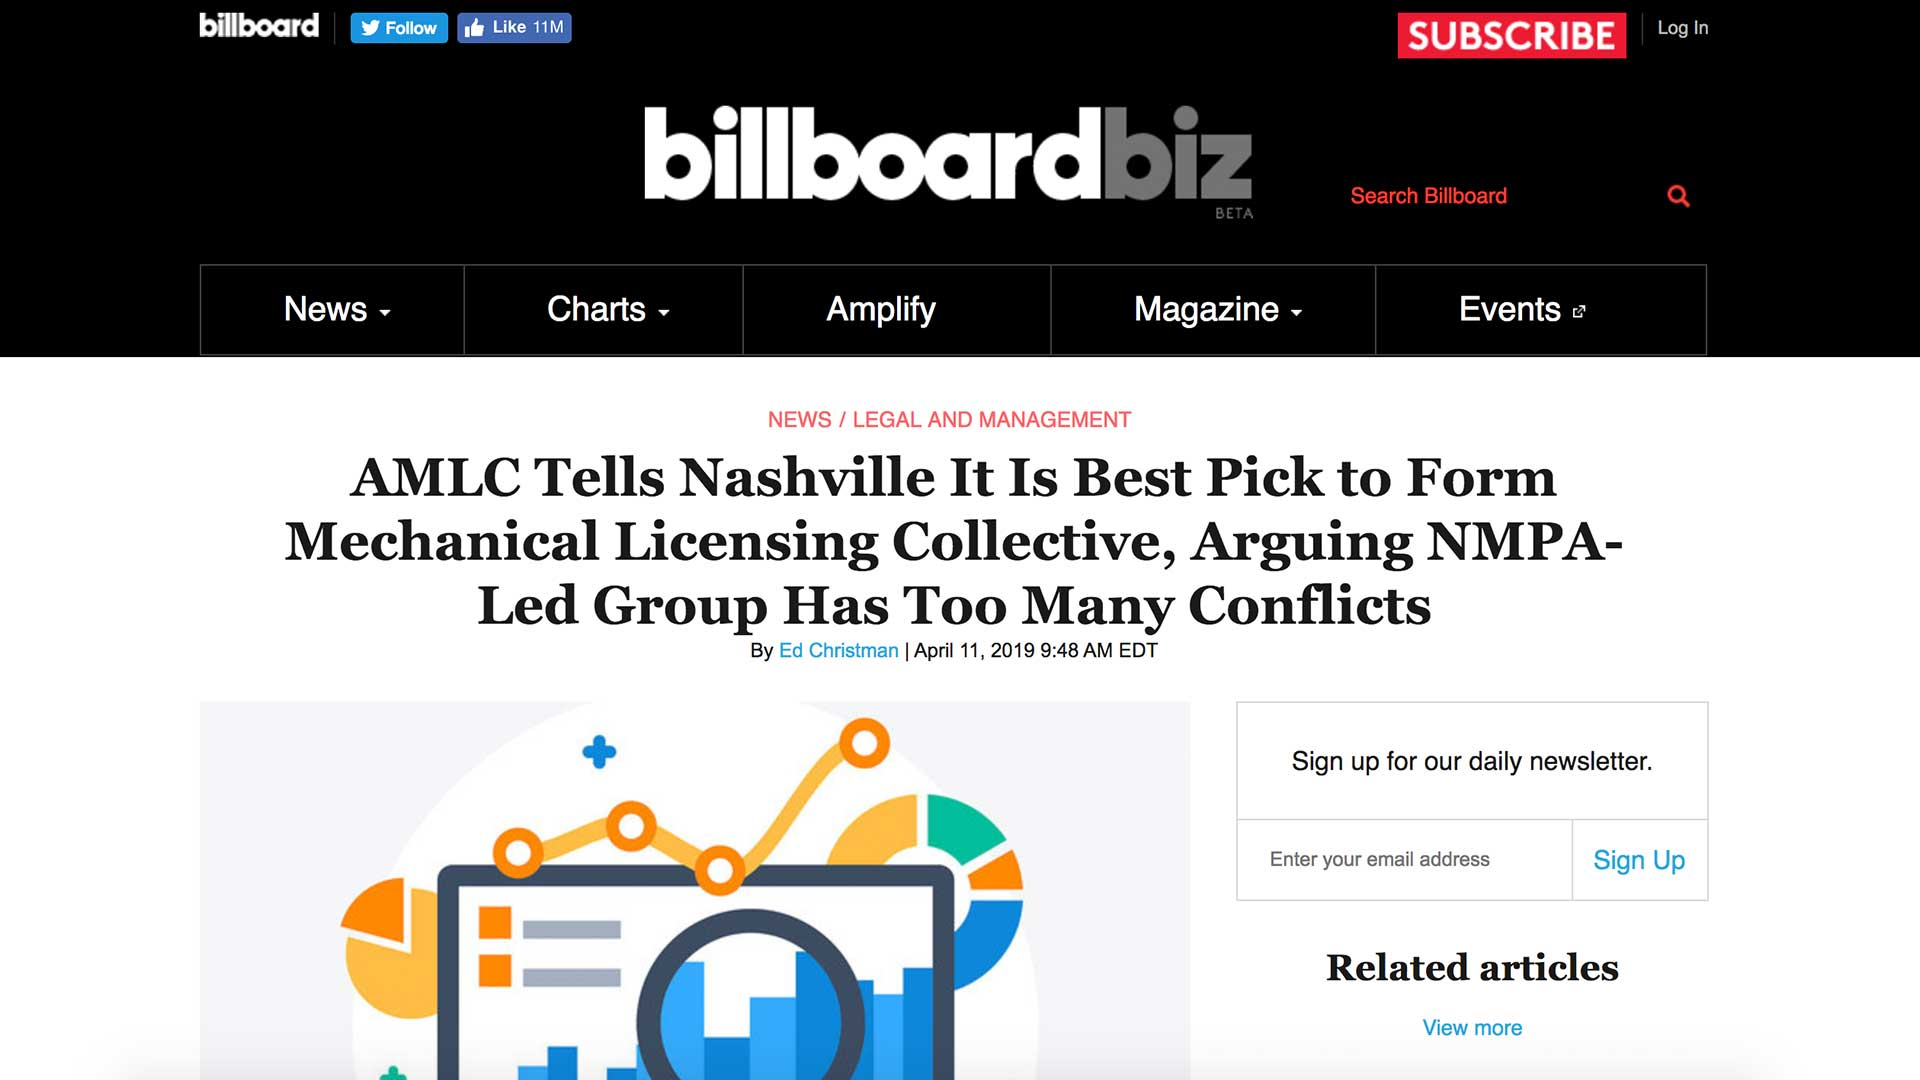 Fairness Rocks News AMLC Tells Nashville It Is Best Pick to Form Mechanical Licensing Collective, Arguing NMPA-Led Group Has Too Many Conflicts